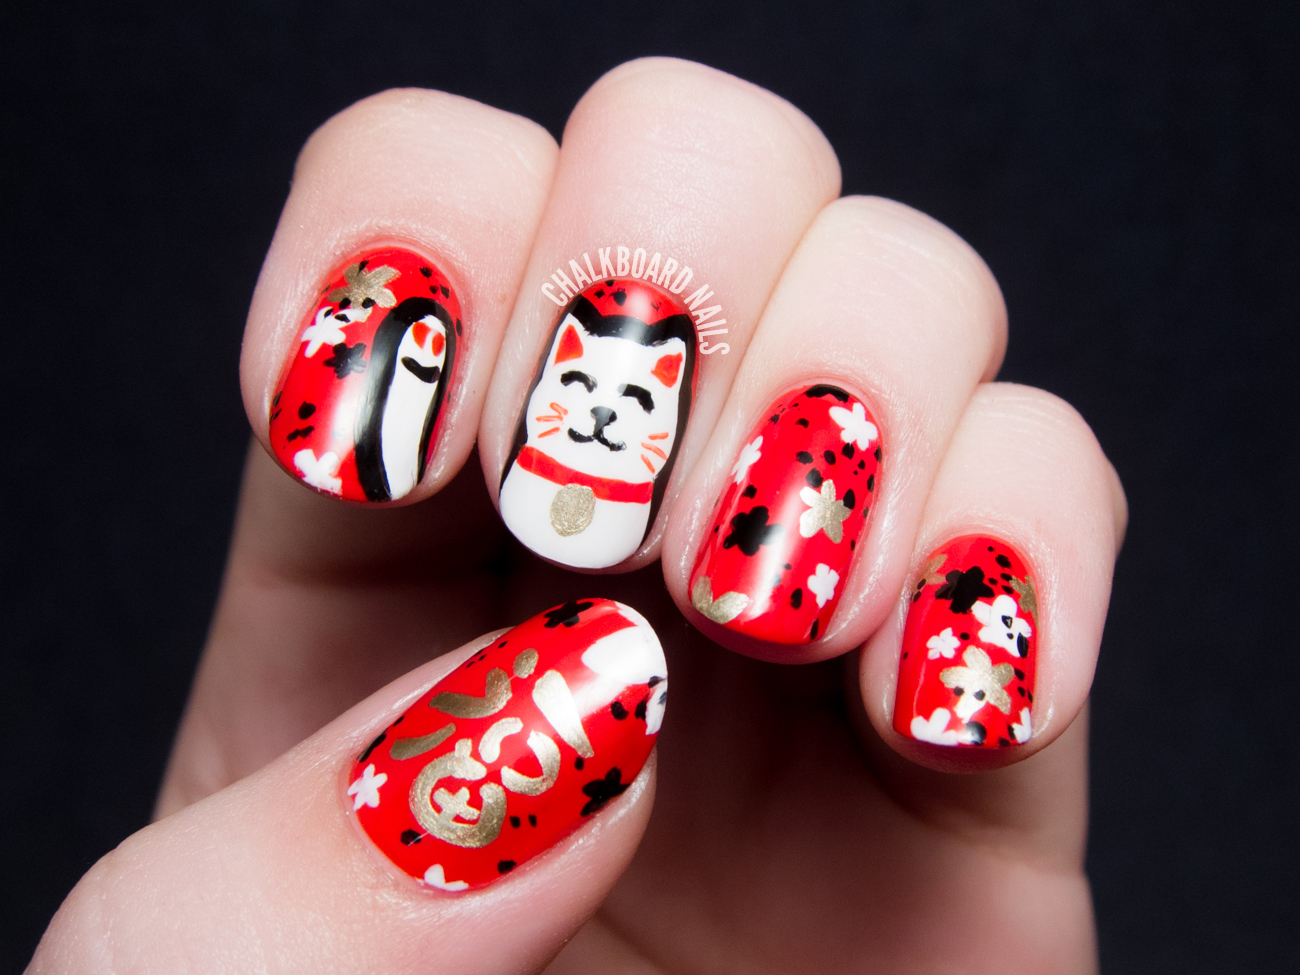 Chinese New Year Monkey Nail Art Design The Best Inspiration For